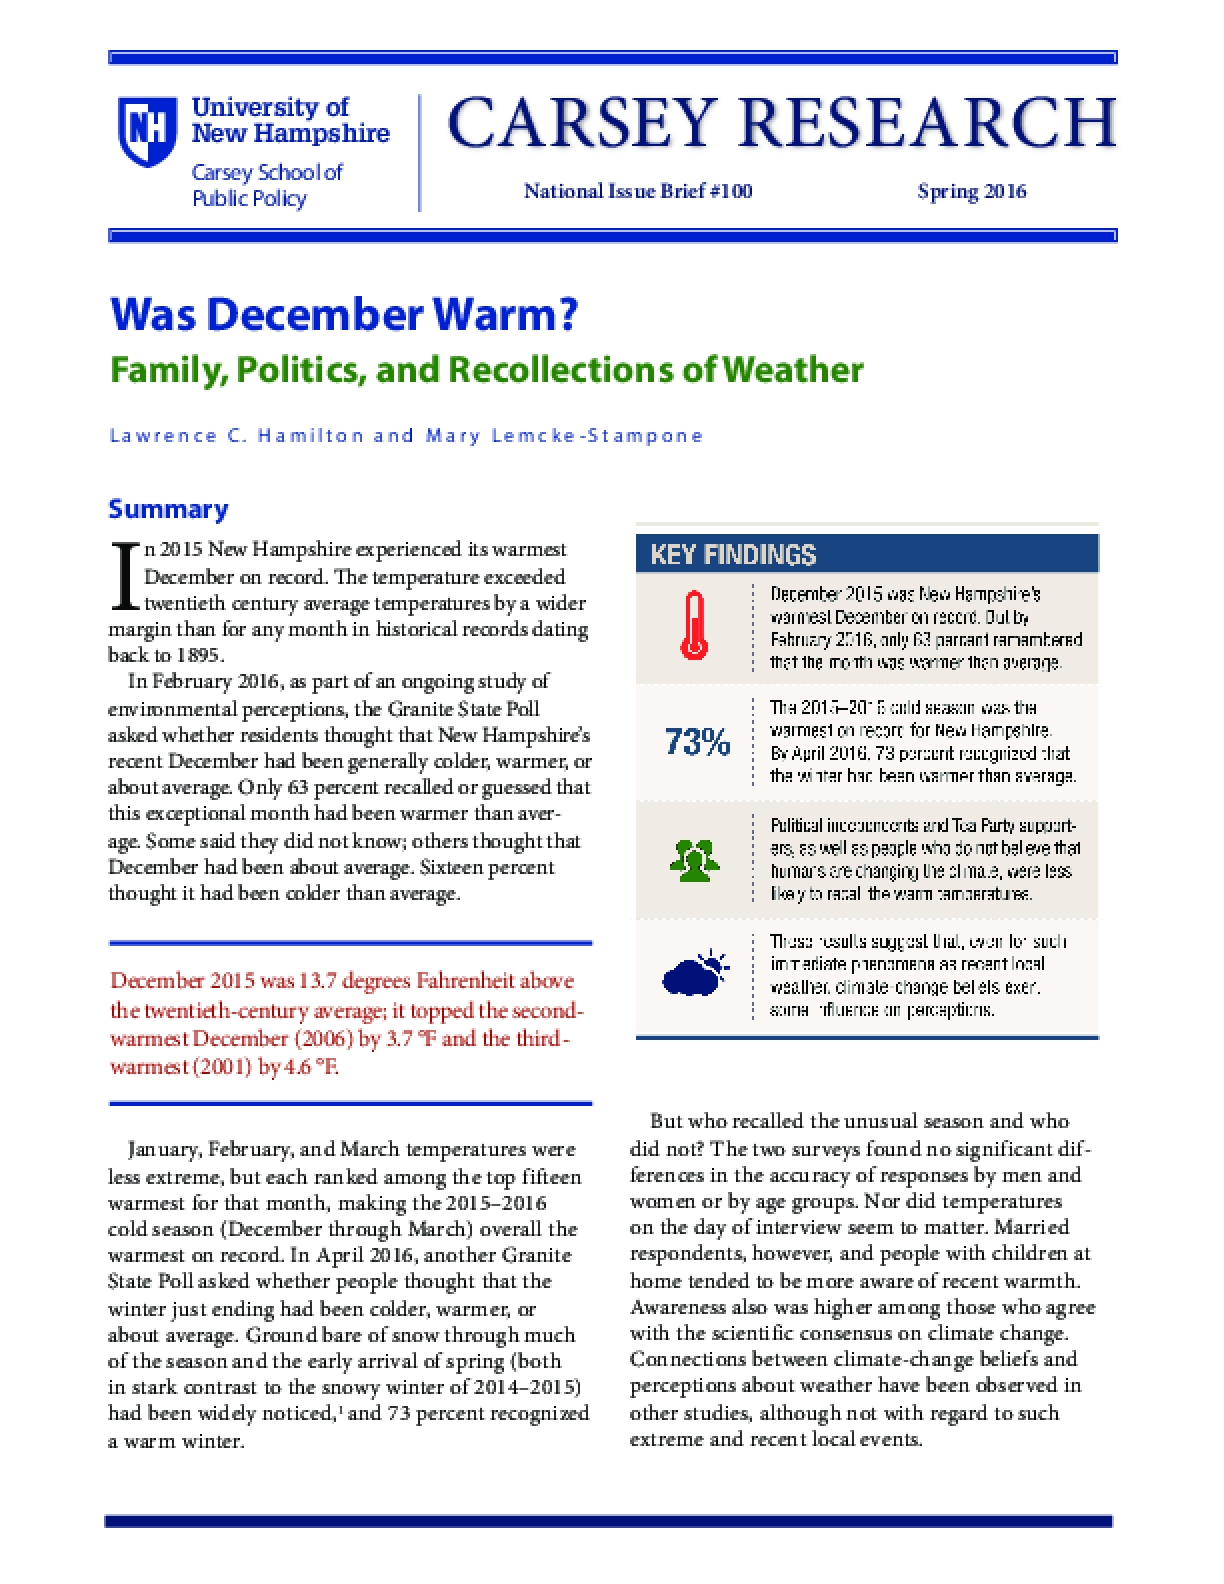 Was December Warm?: Family, Politics, and Recollections of Weather